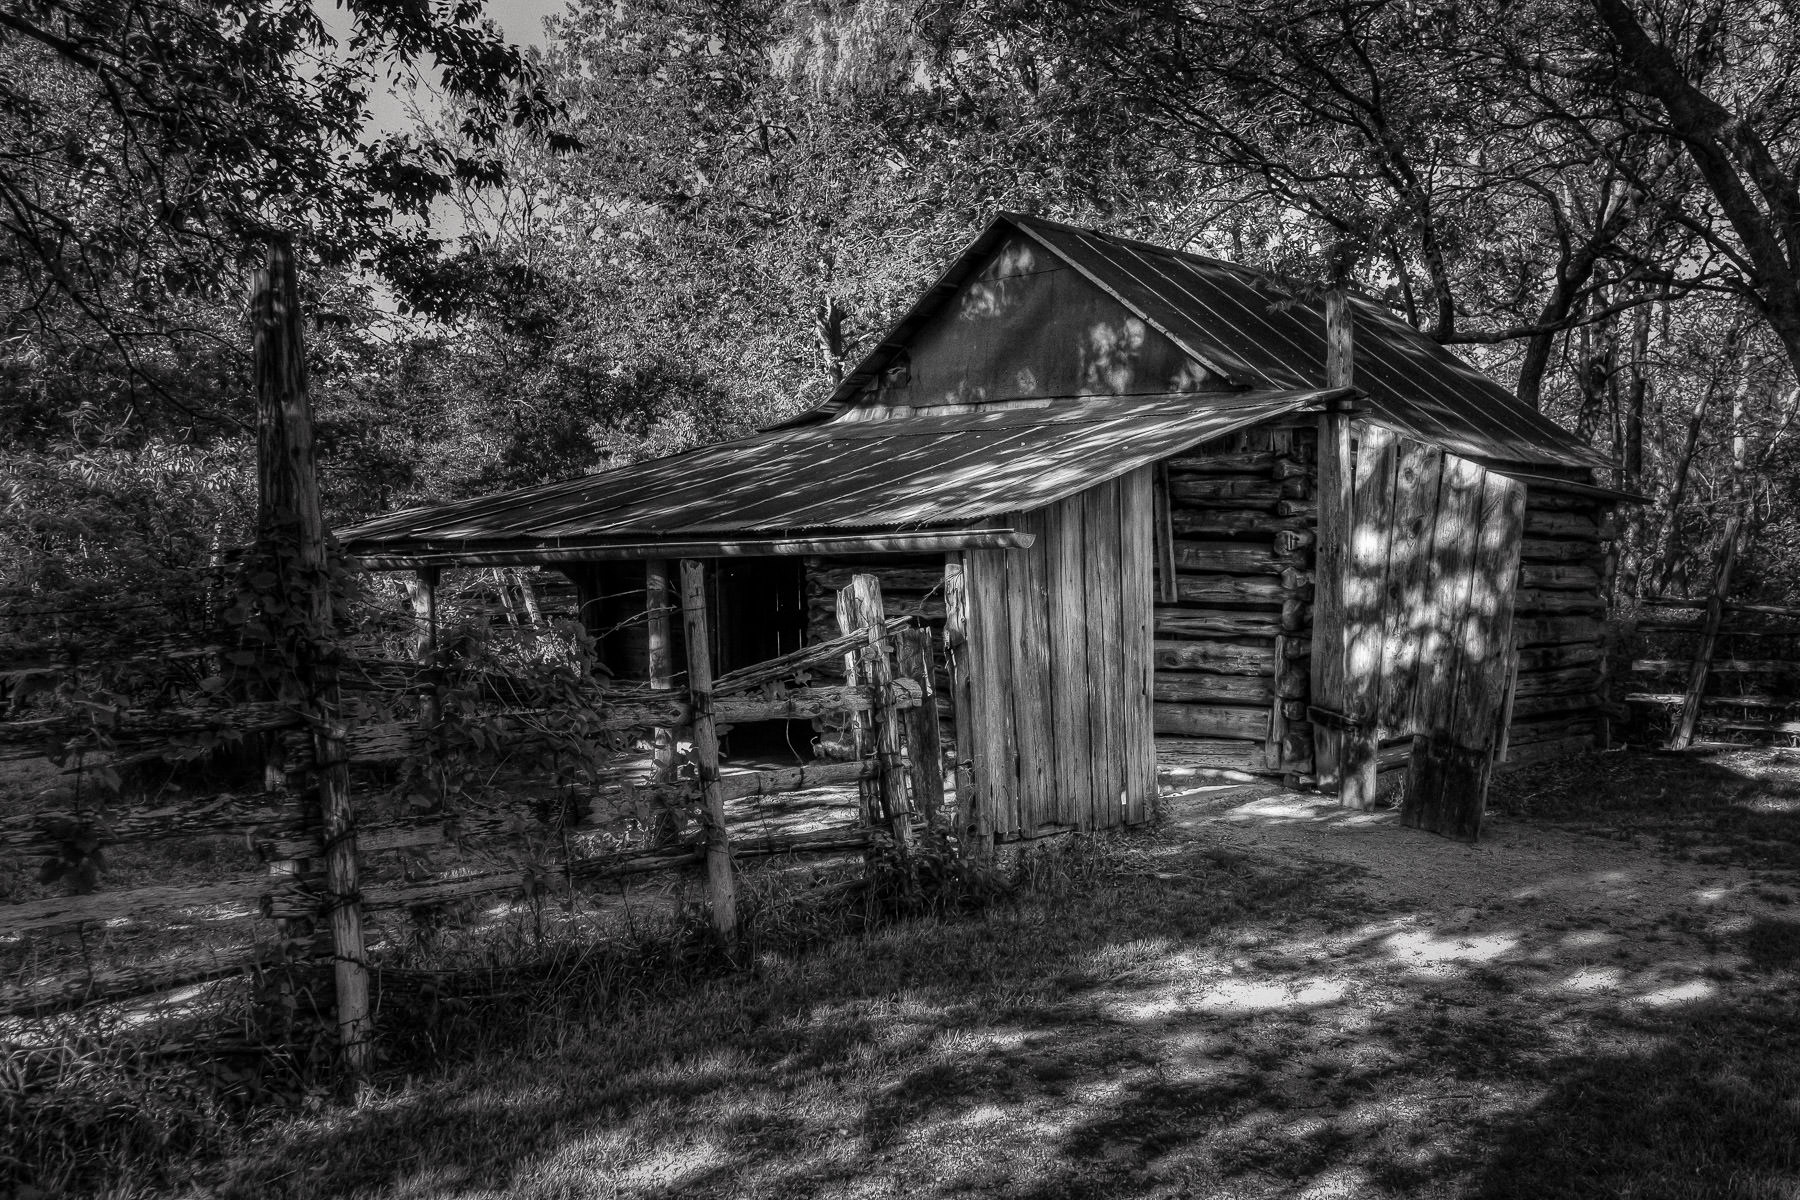 An ancient wooden barn slowly rots at Penn Farm in Cedar Hill State Park, Texas.